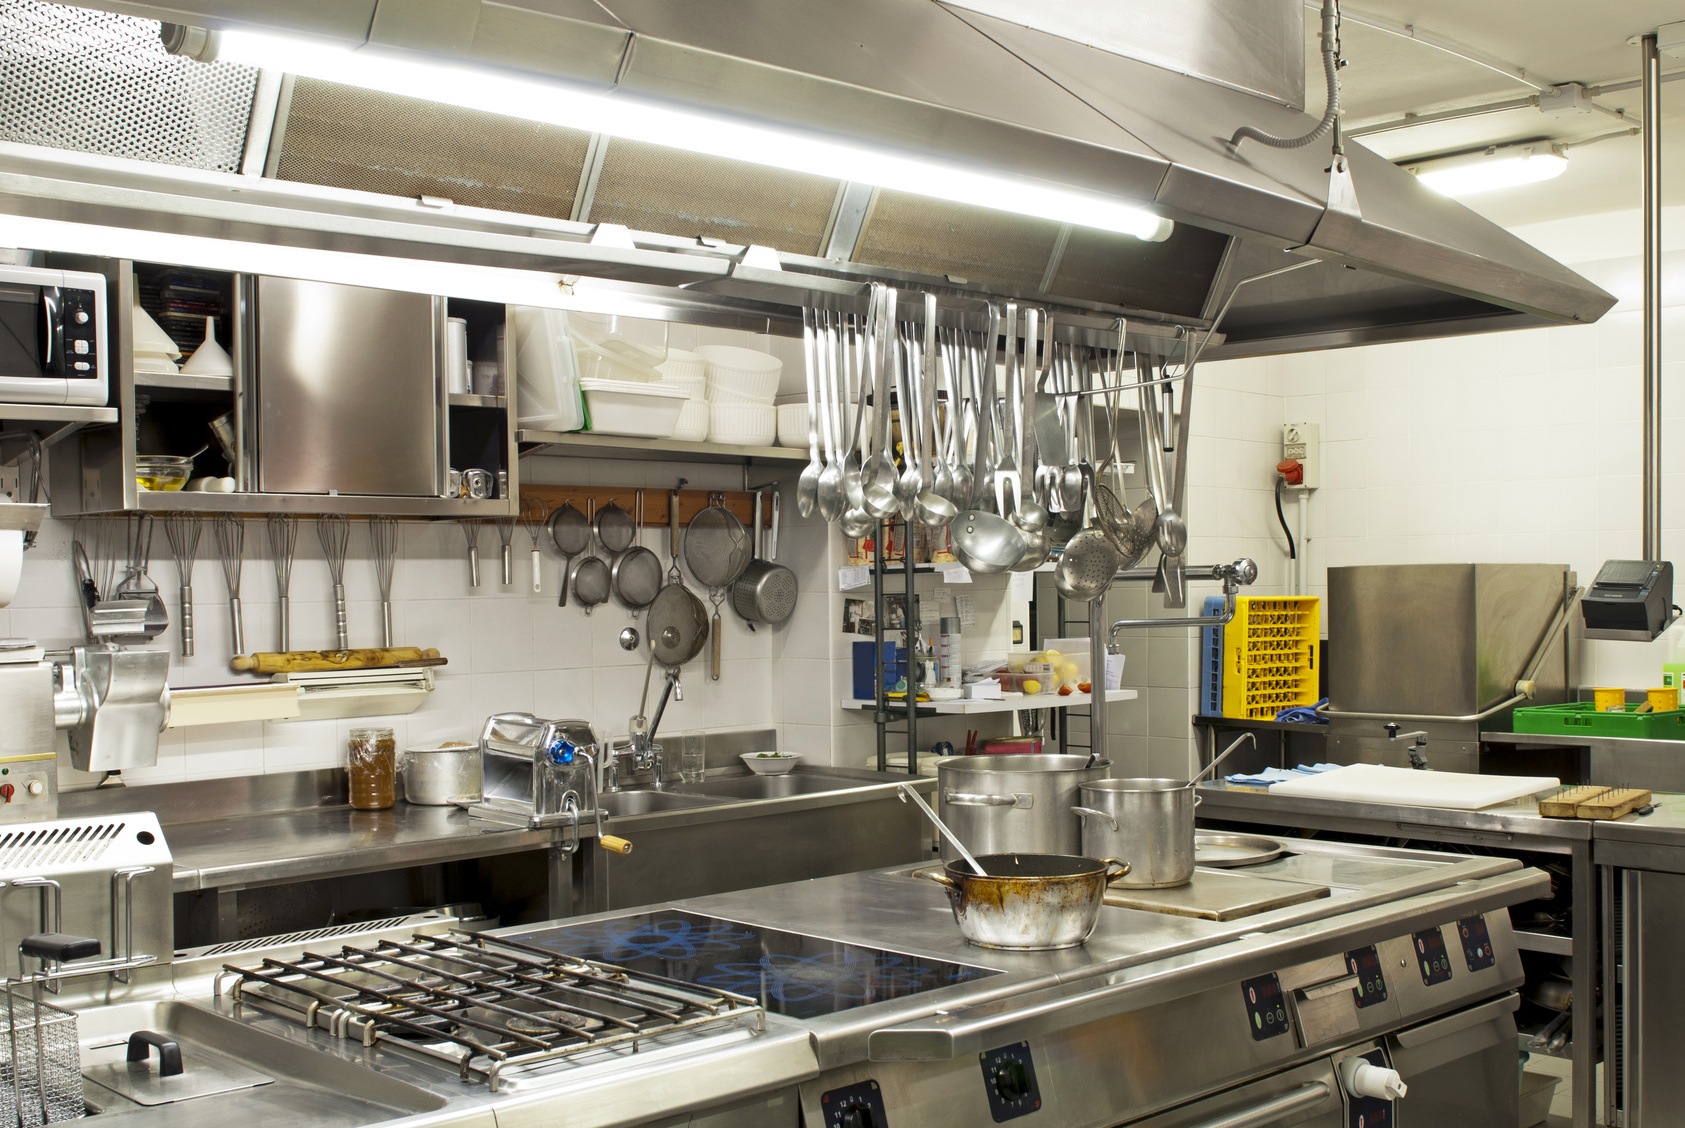 Extraction de cuisines paris ventilation for Extraction cuisine professionnelle